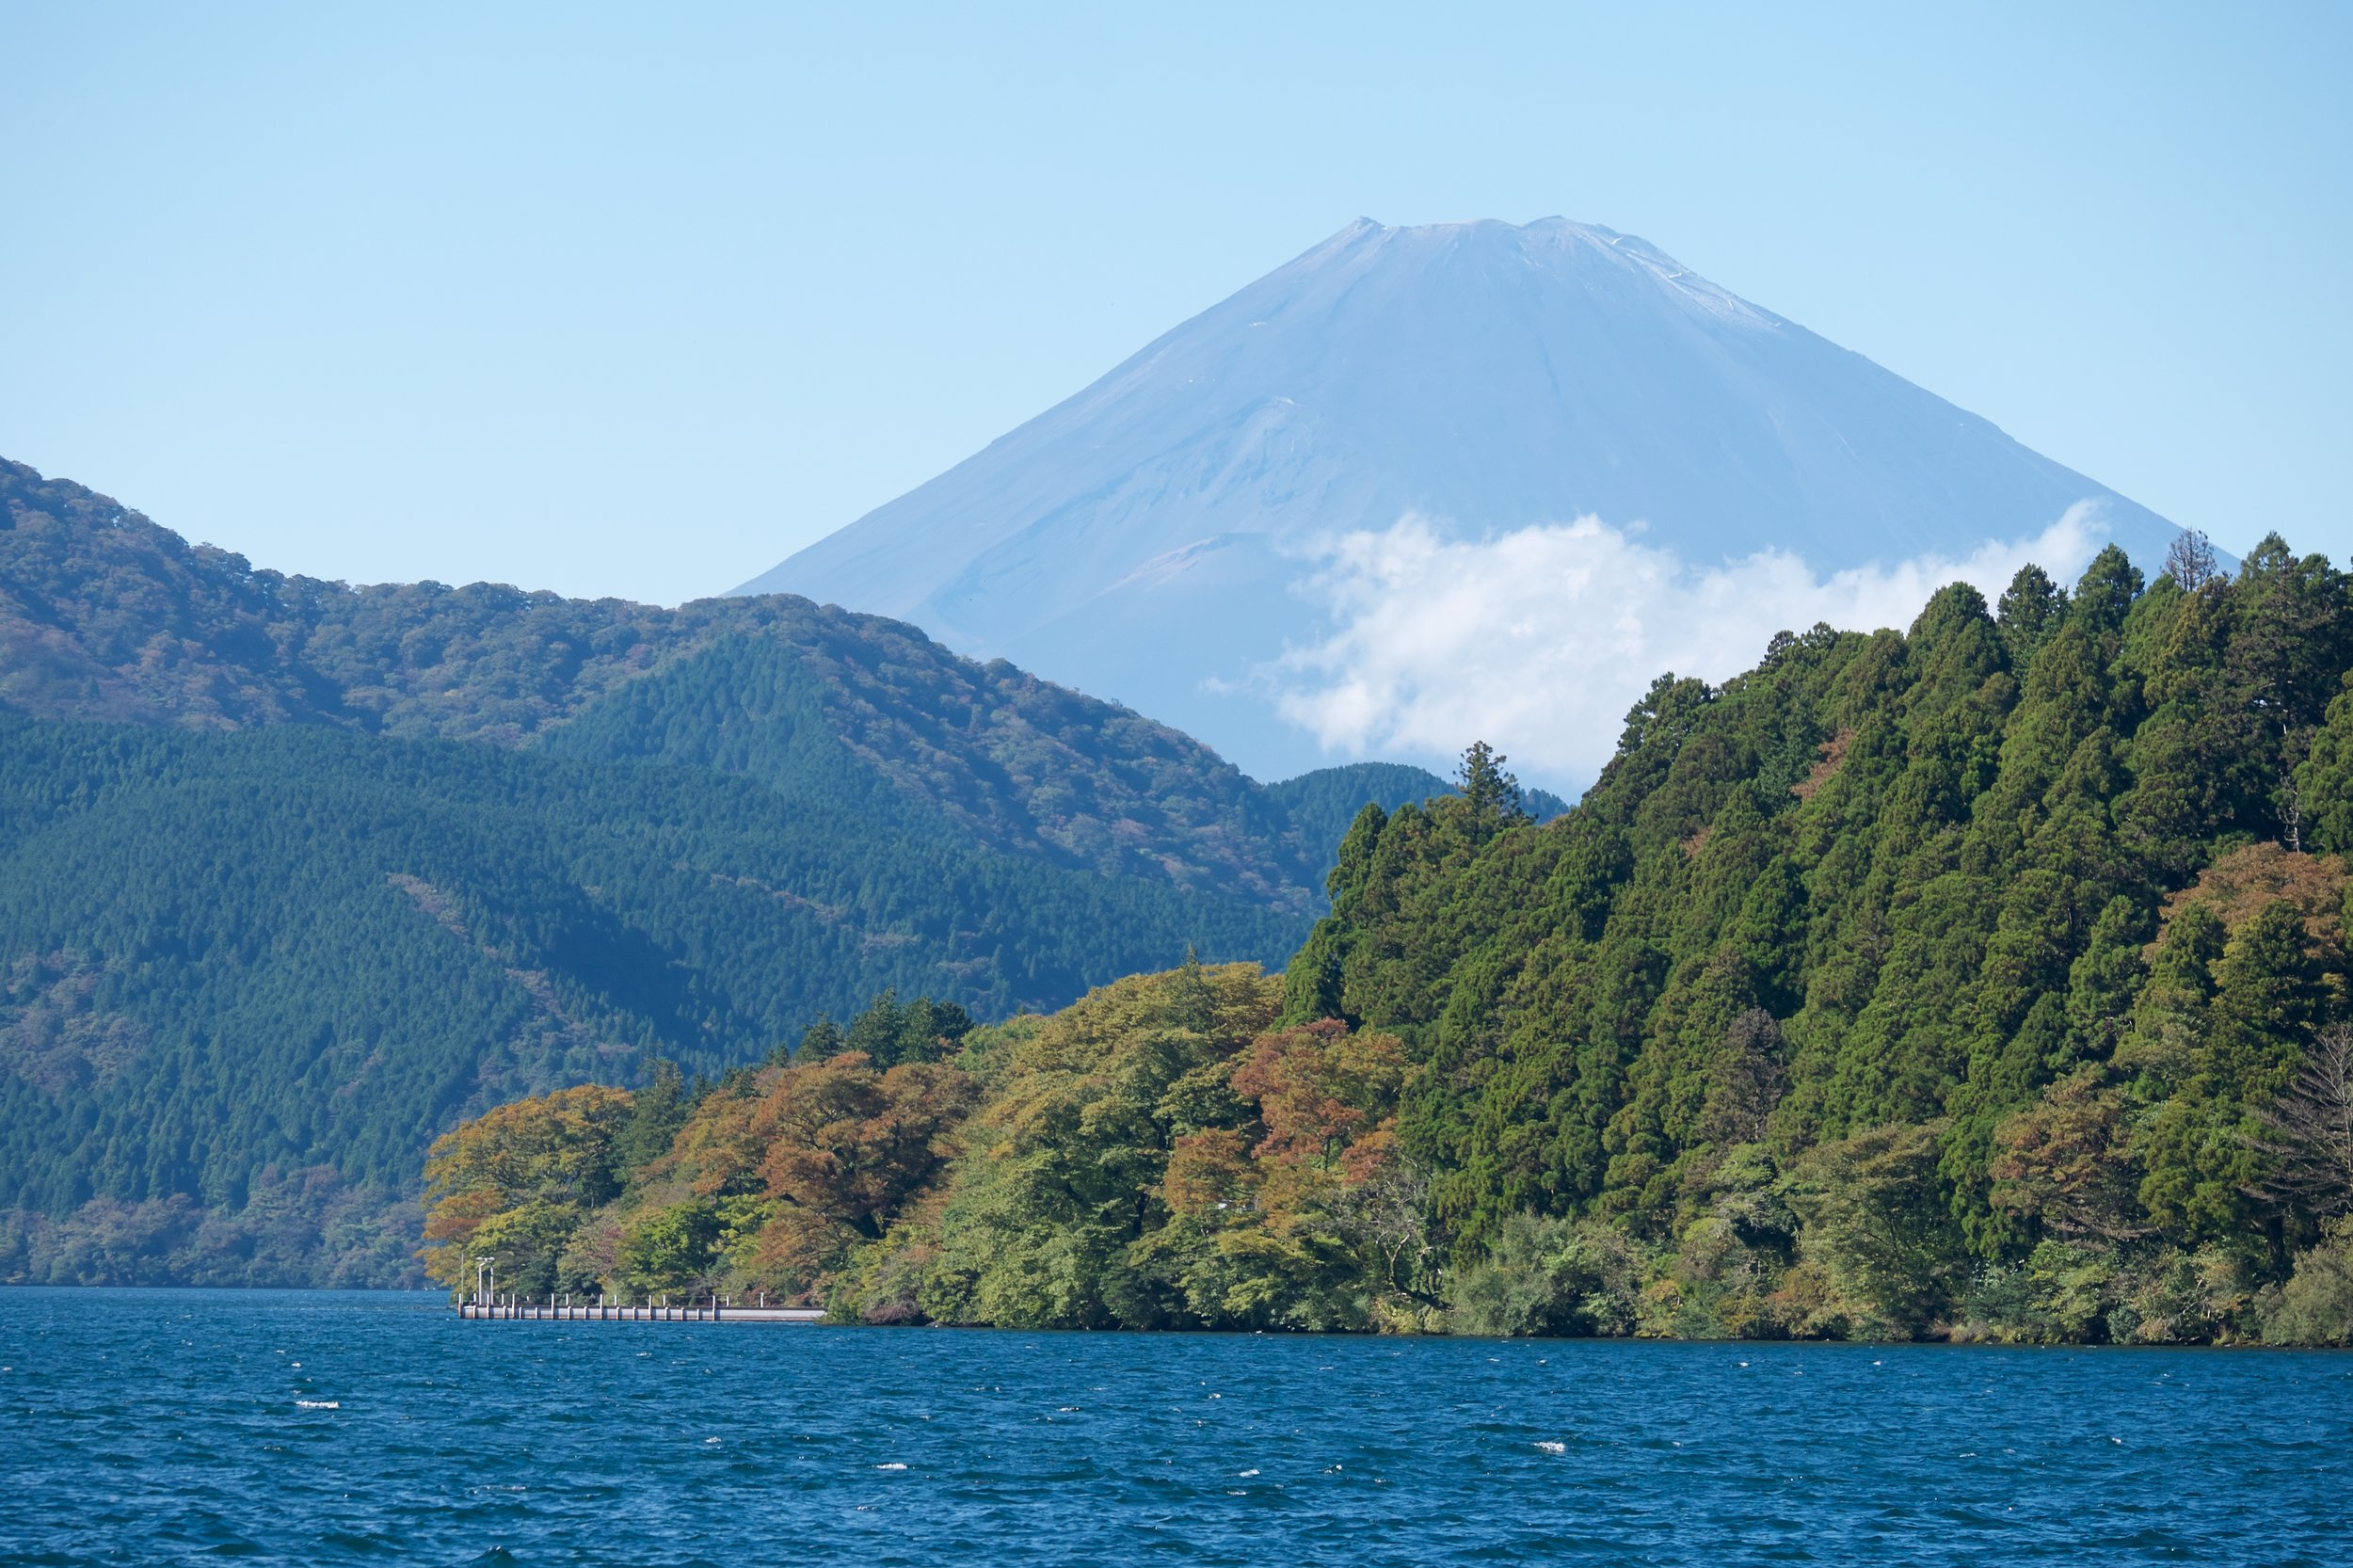 Our first view of Mt. Fuji